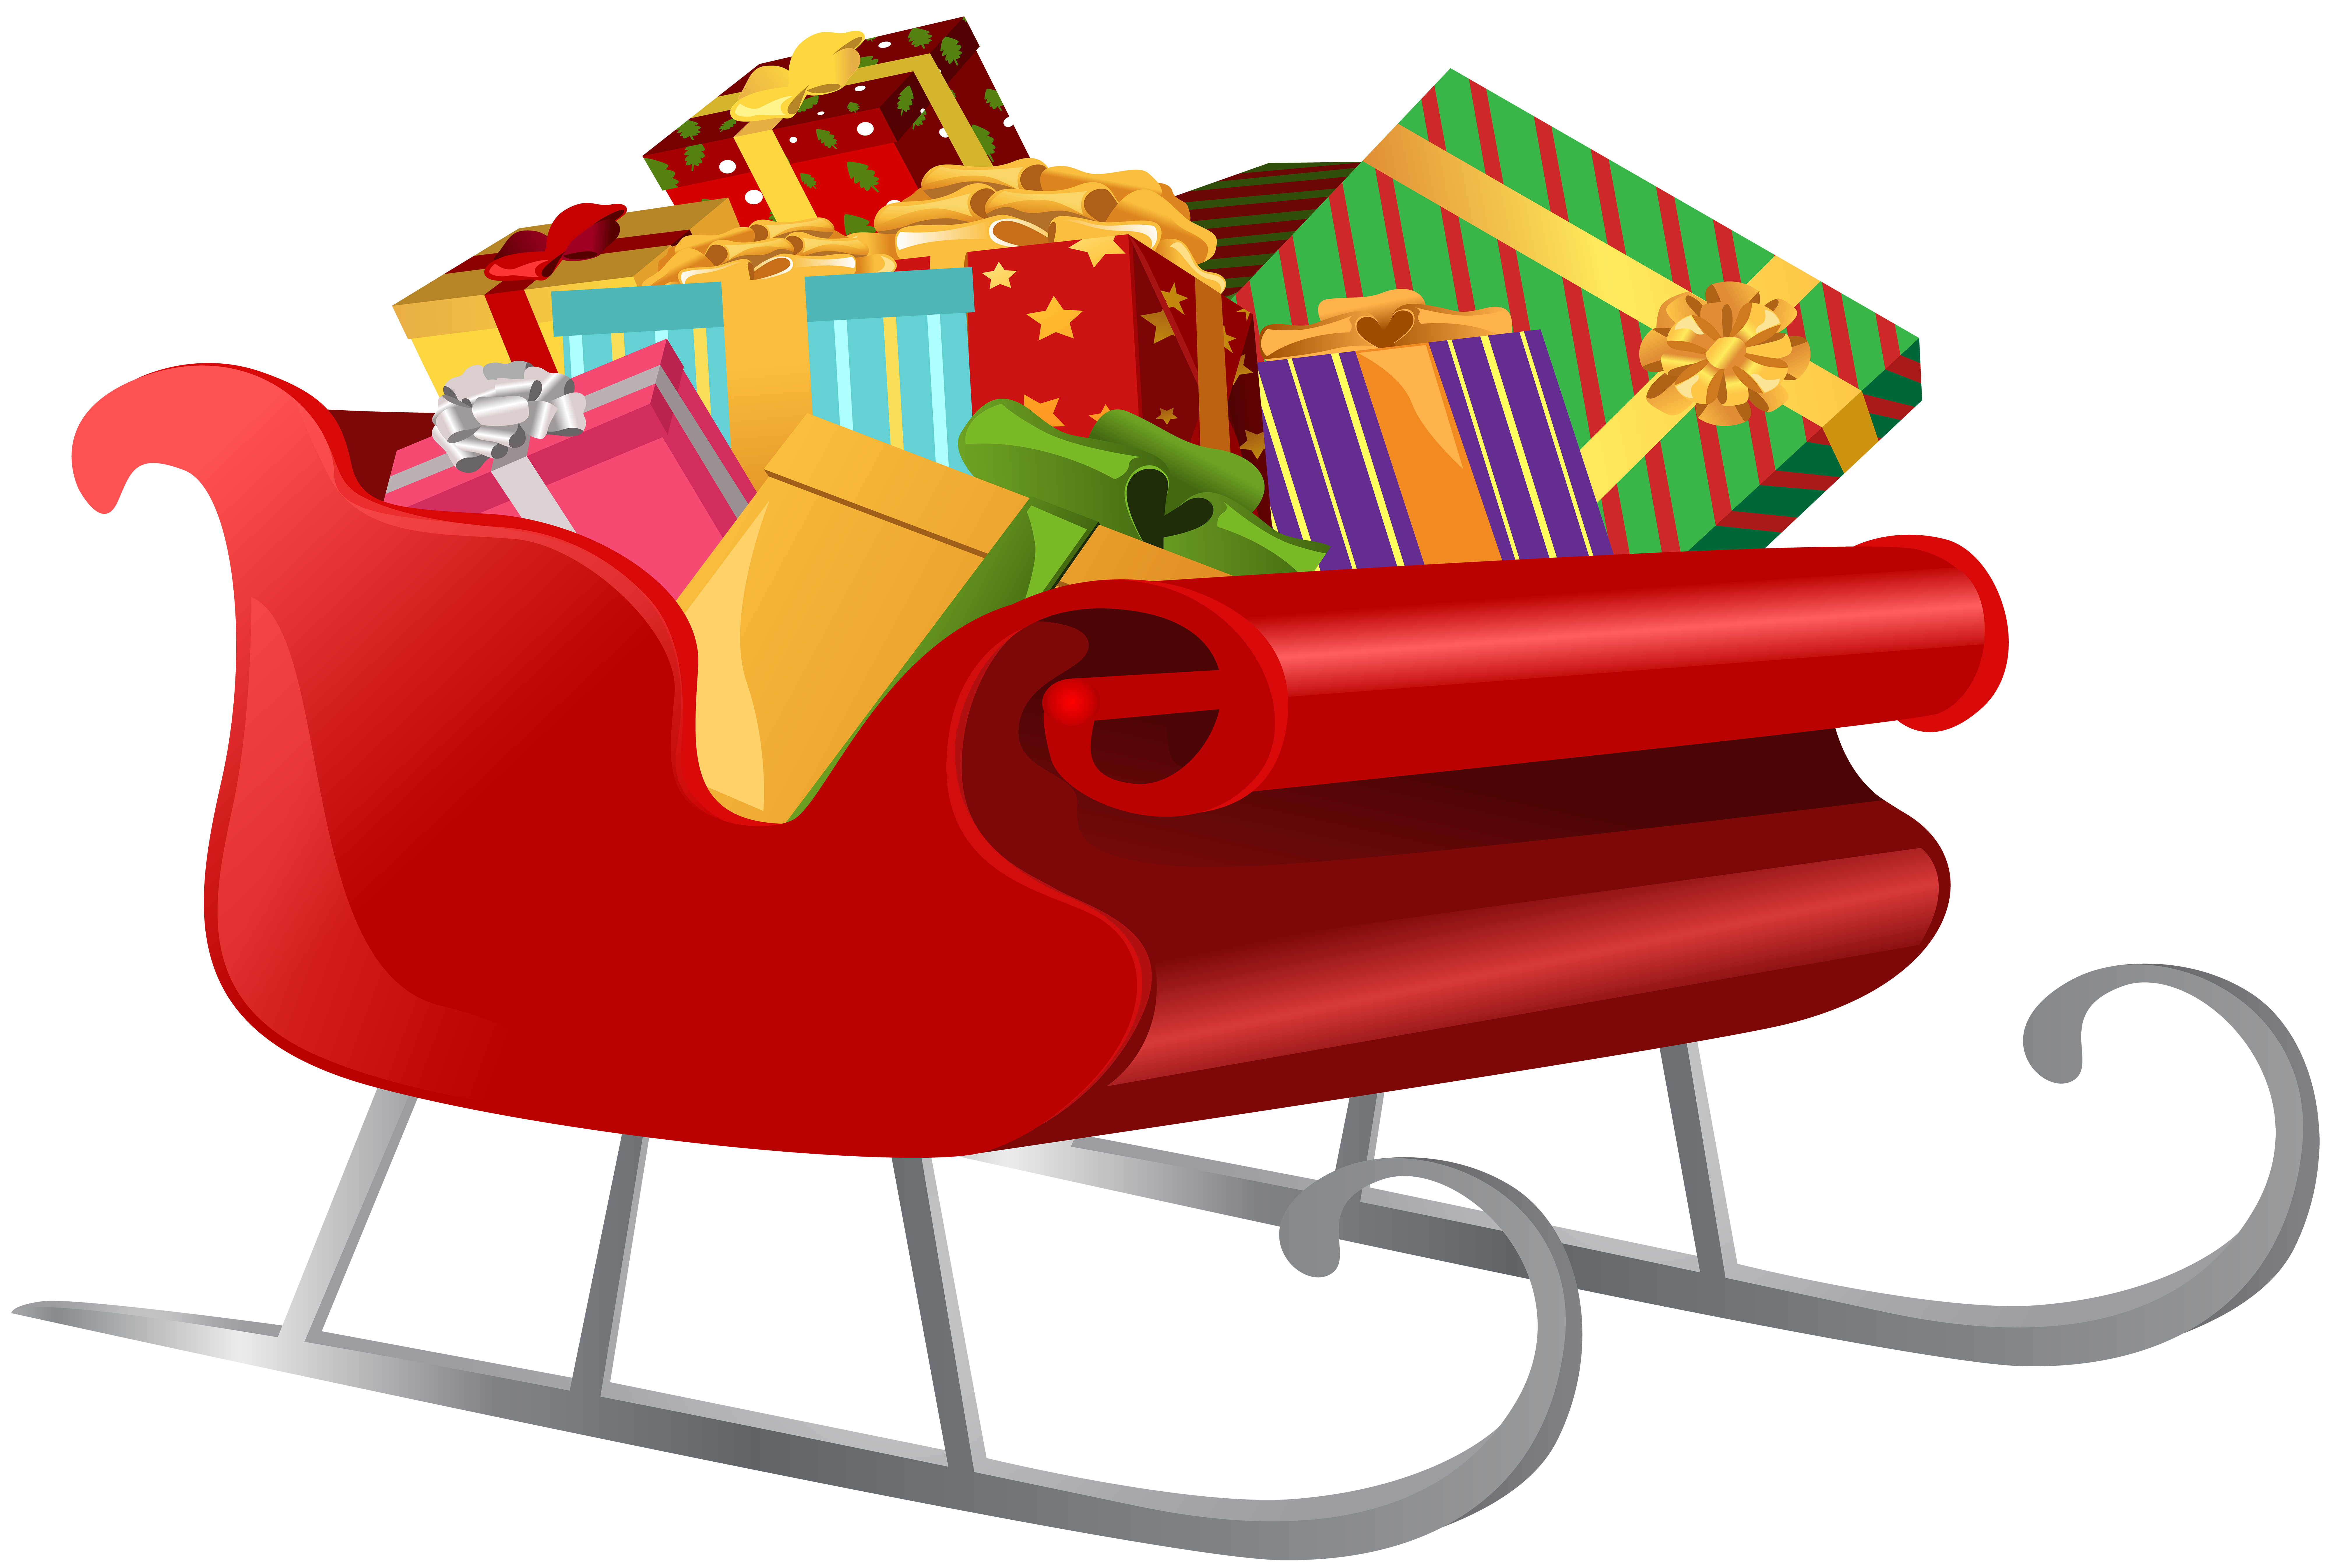 Santa Sleigh with Gifts PNG Clip Art Image.